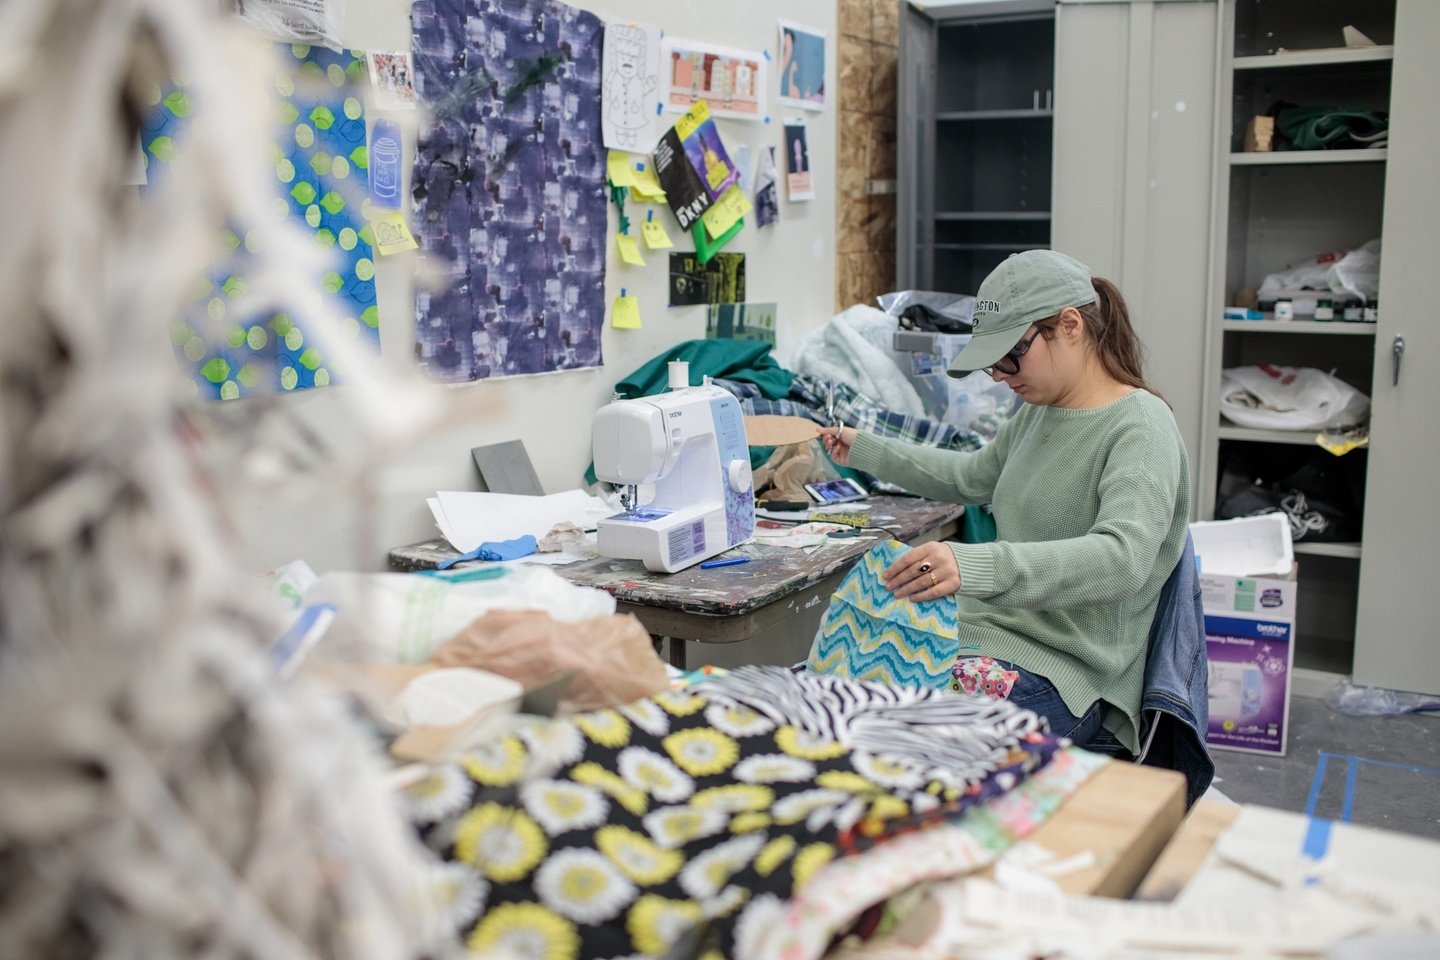 A woman sits at a sewing machine in the fashion studio. There are piles of fabric surrounding her.